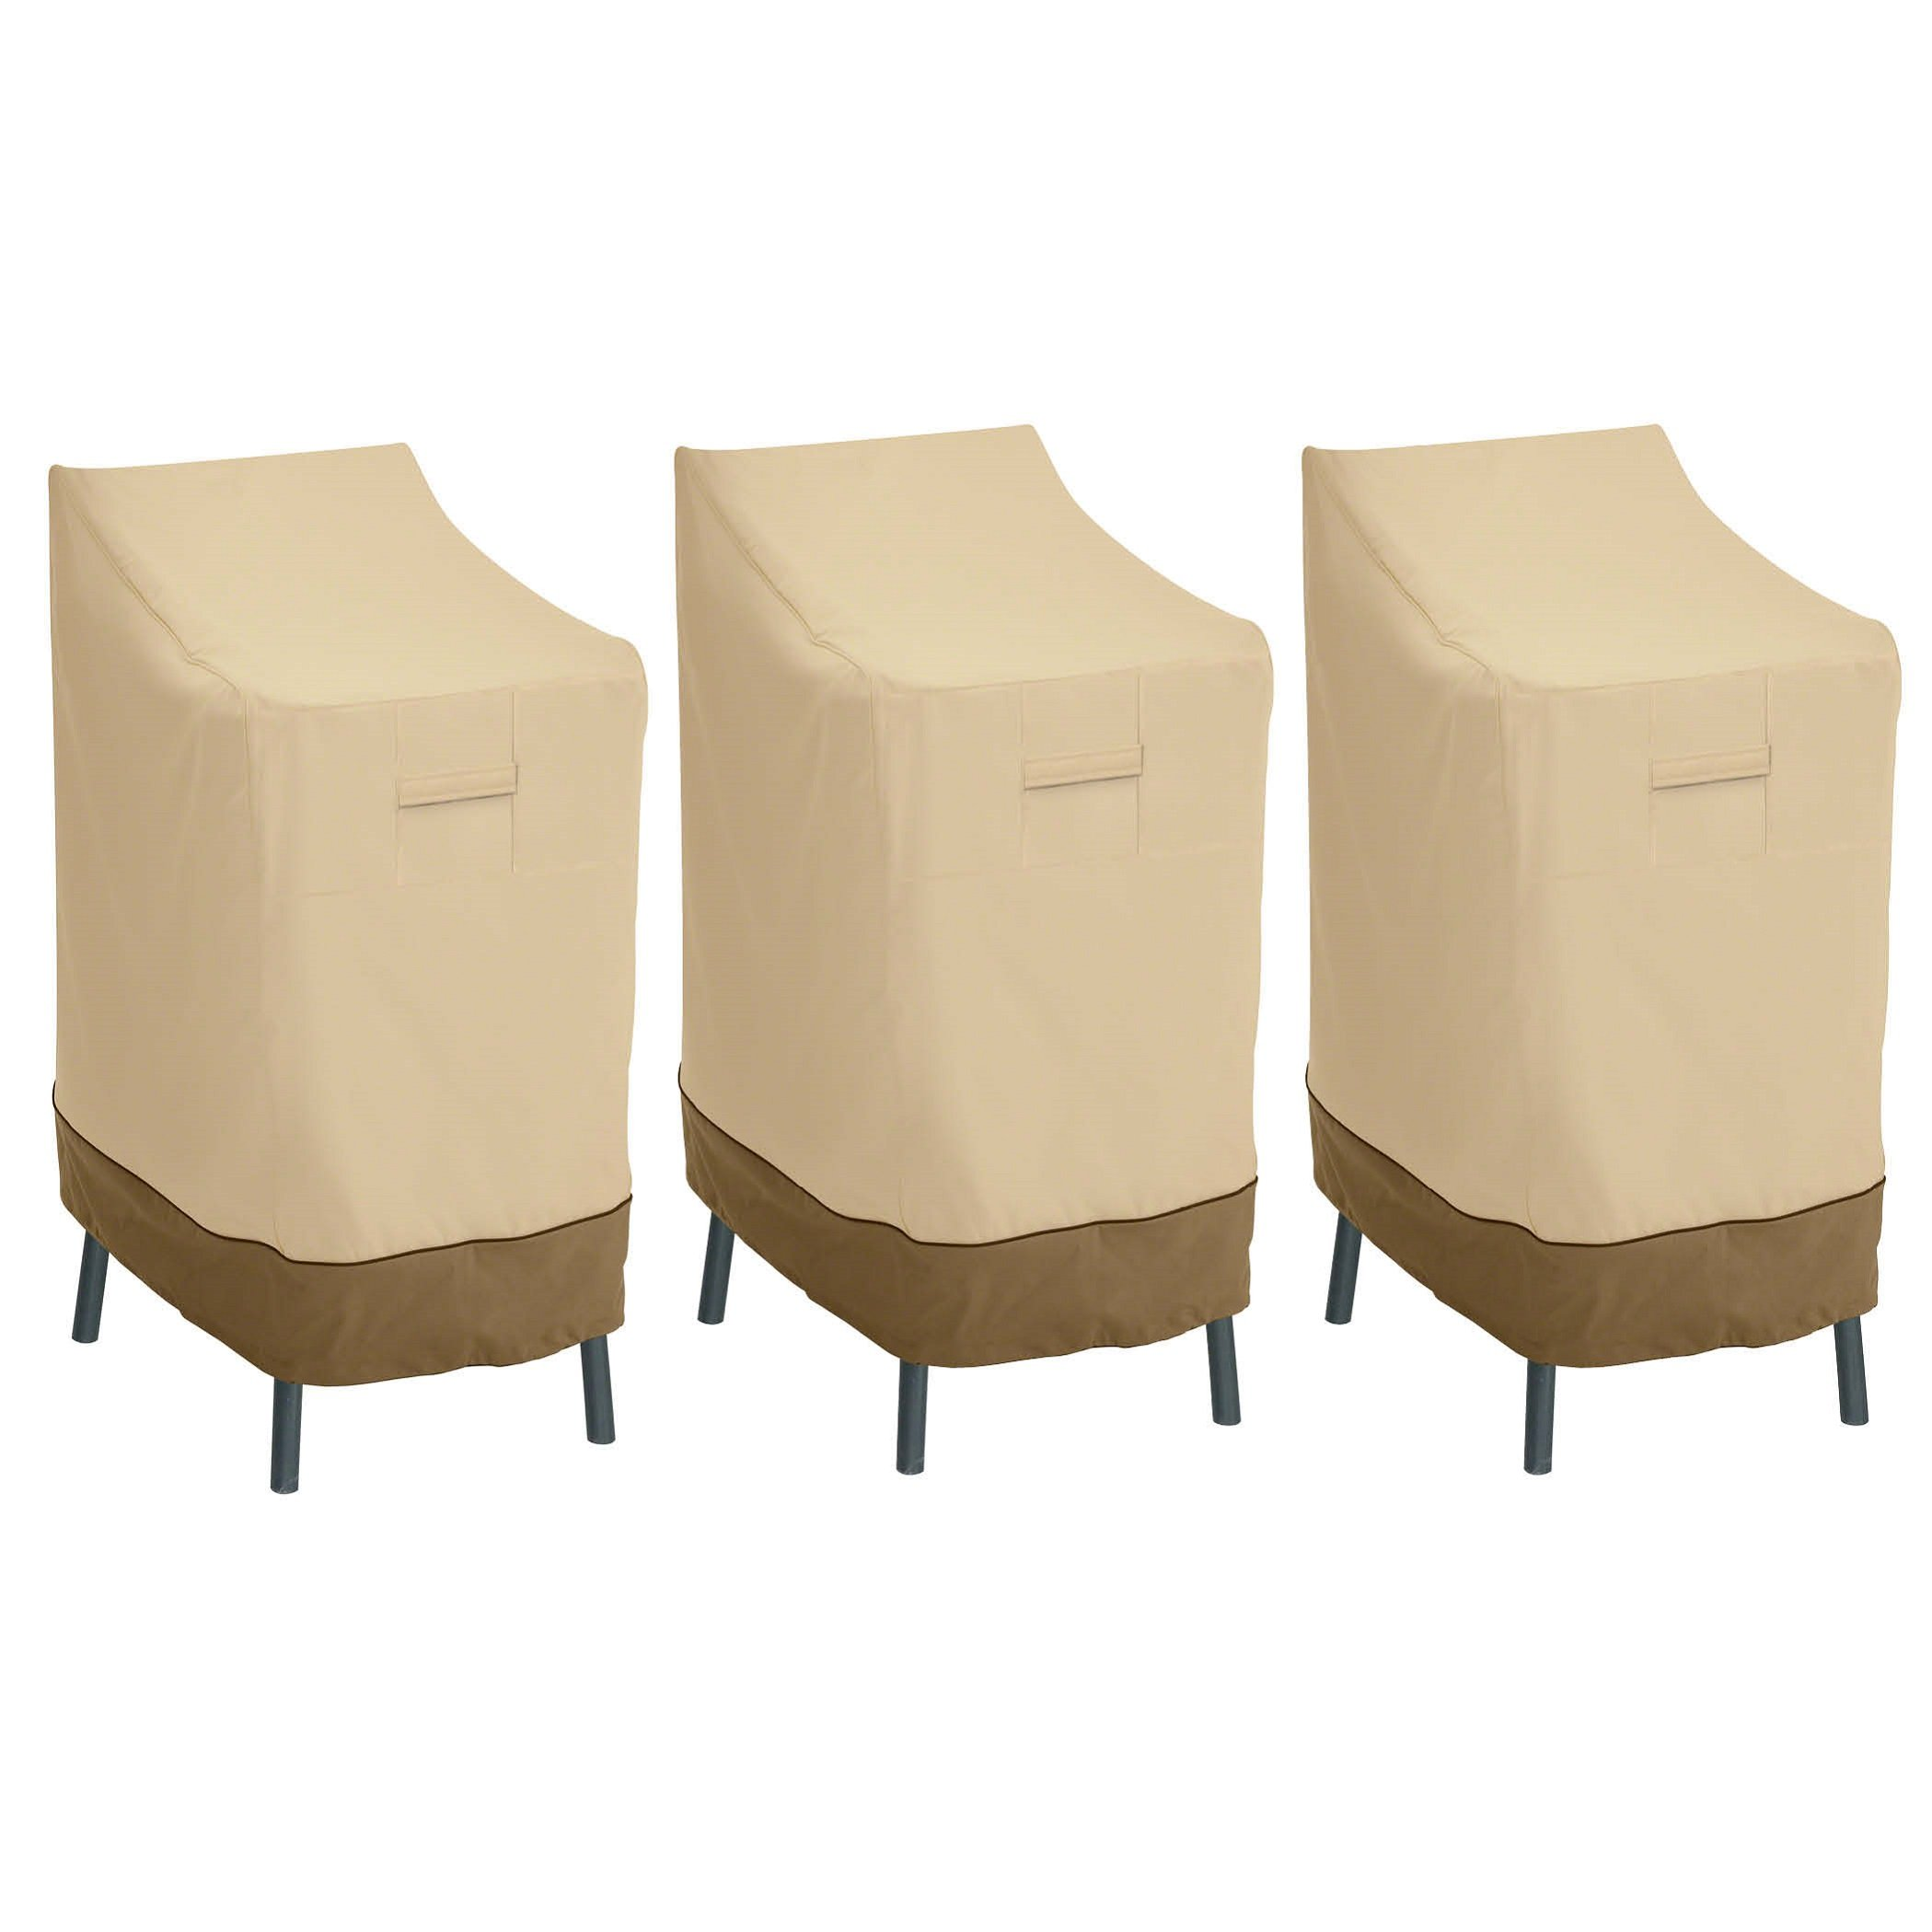 Classic Accessories Veranda Patio Bar Chair/Stool Cover (3-Pack)